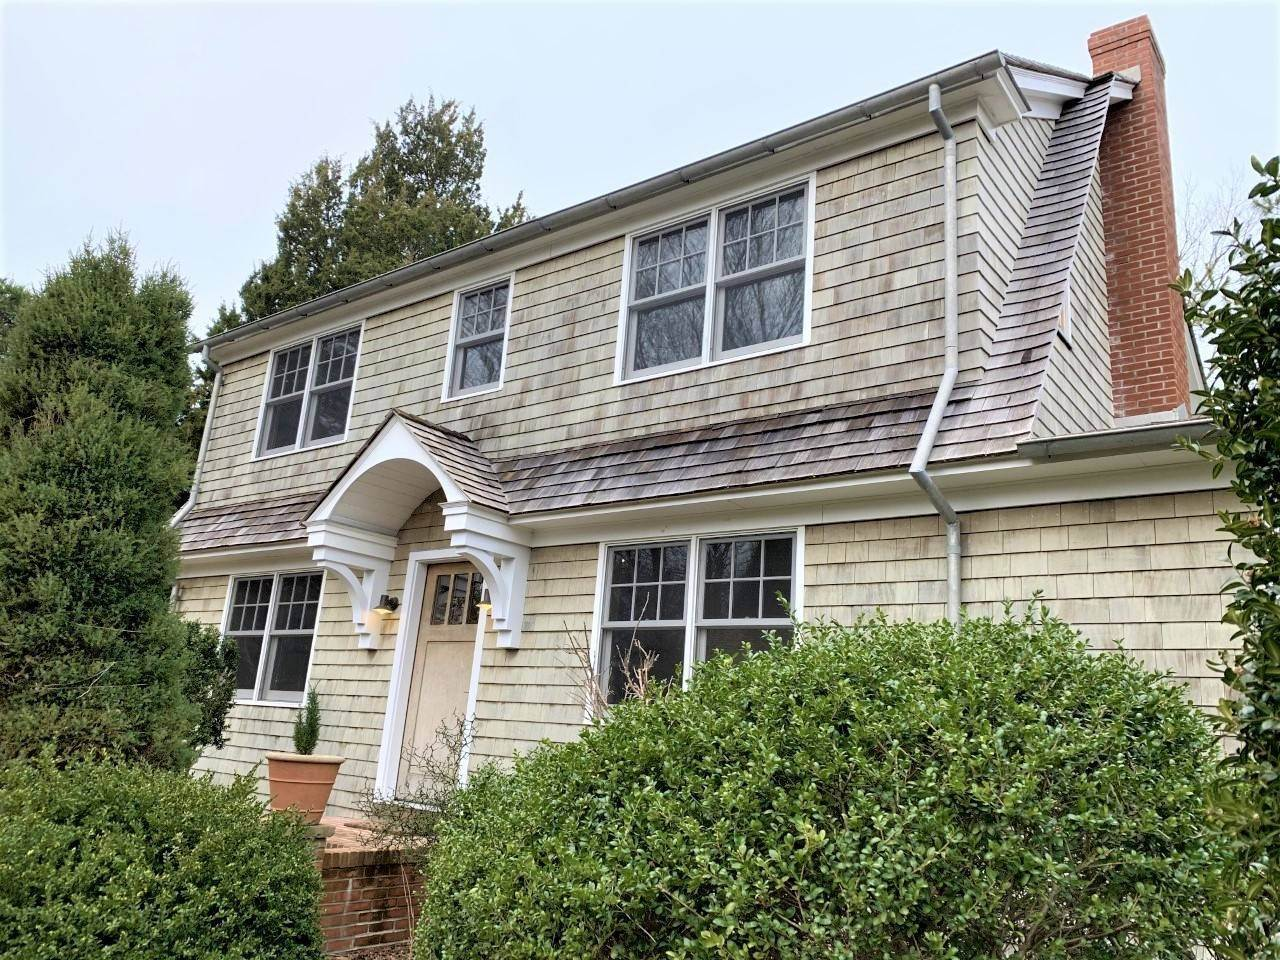 Single Family Home at Fun Carefree Village Renovated Modern Interior And Heated Pool Sag Harbor, NY 11963